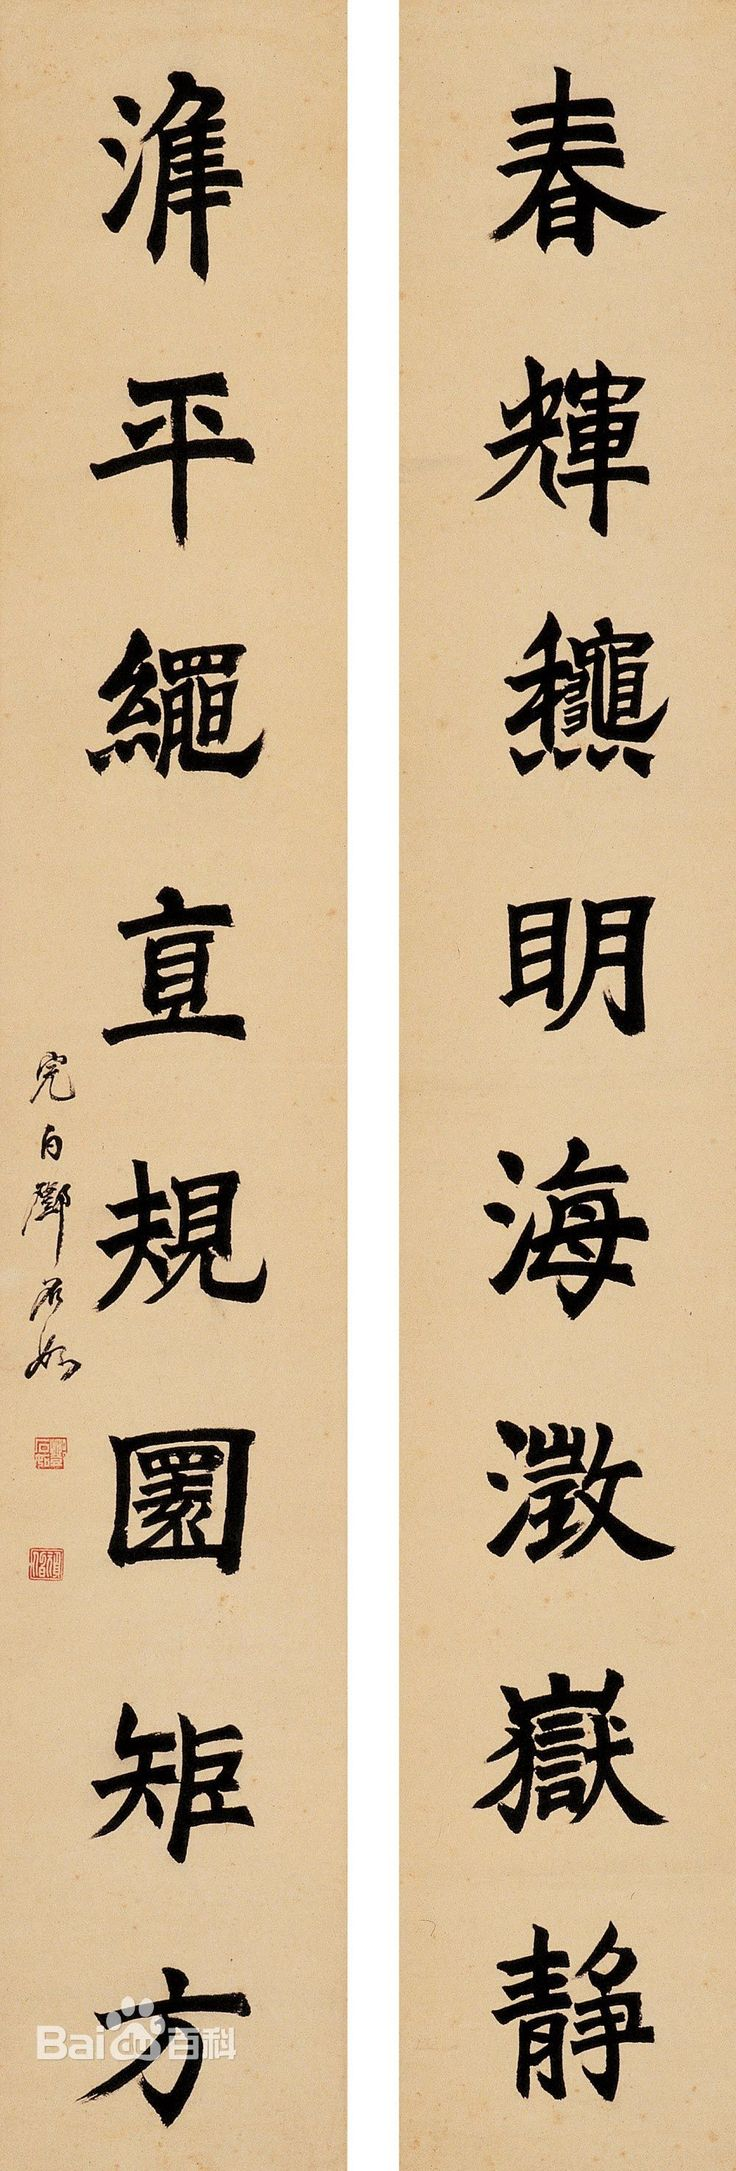 153 Best Asian Art And Calligraphy Images On Pinterest